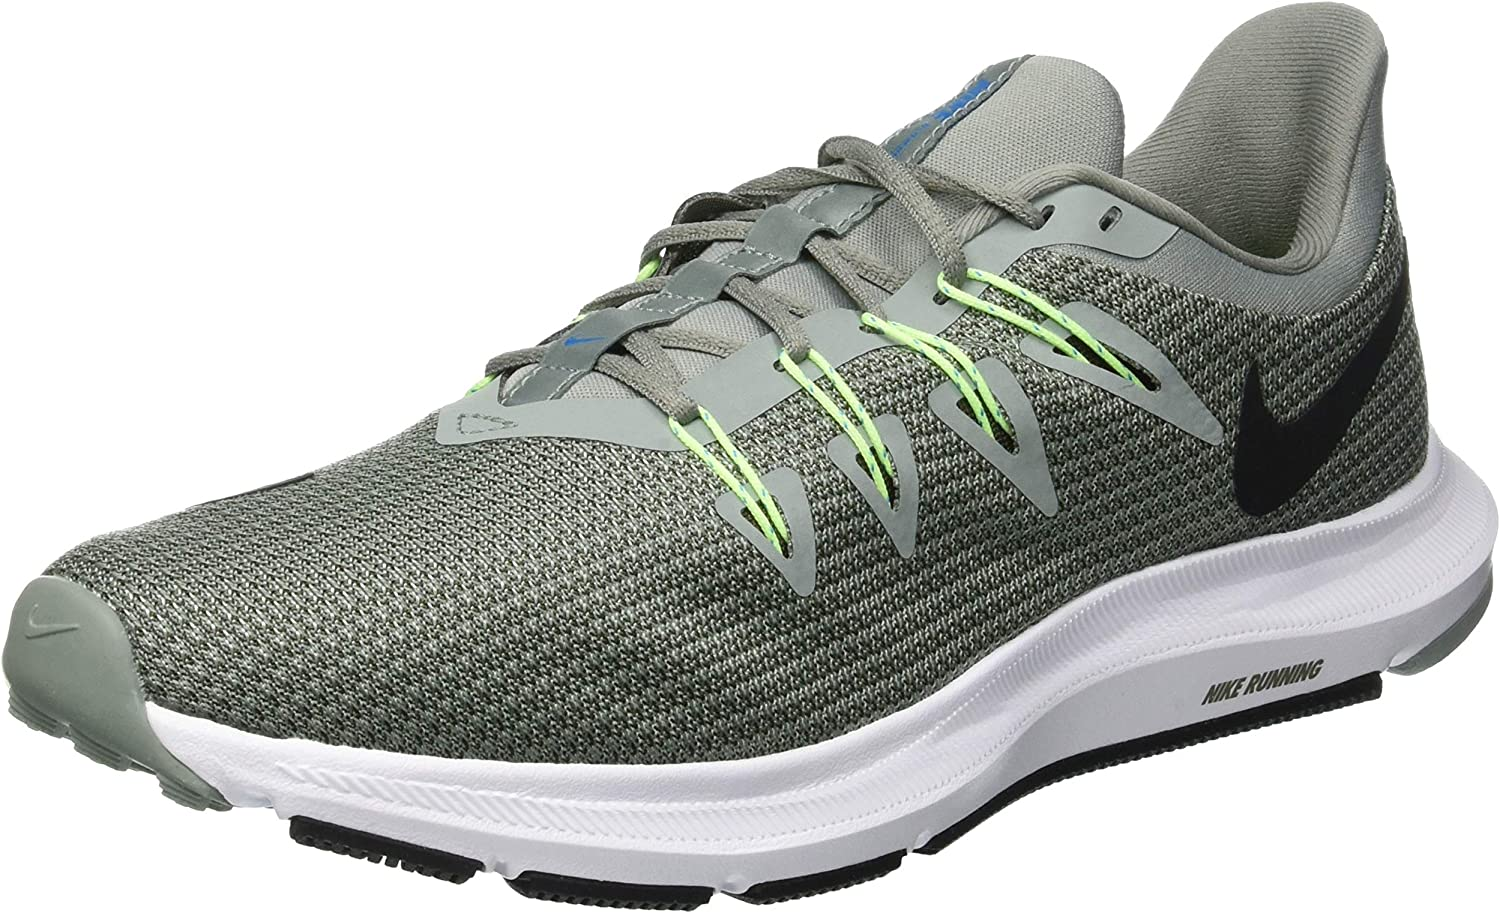 Nike Quest, Zapatillas de Running para Hombre, Verde (Mica Green/Black/Twilight Mars 300), 42.5 EU: Amazon.es: Zapatos y complementos